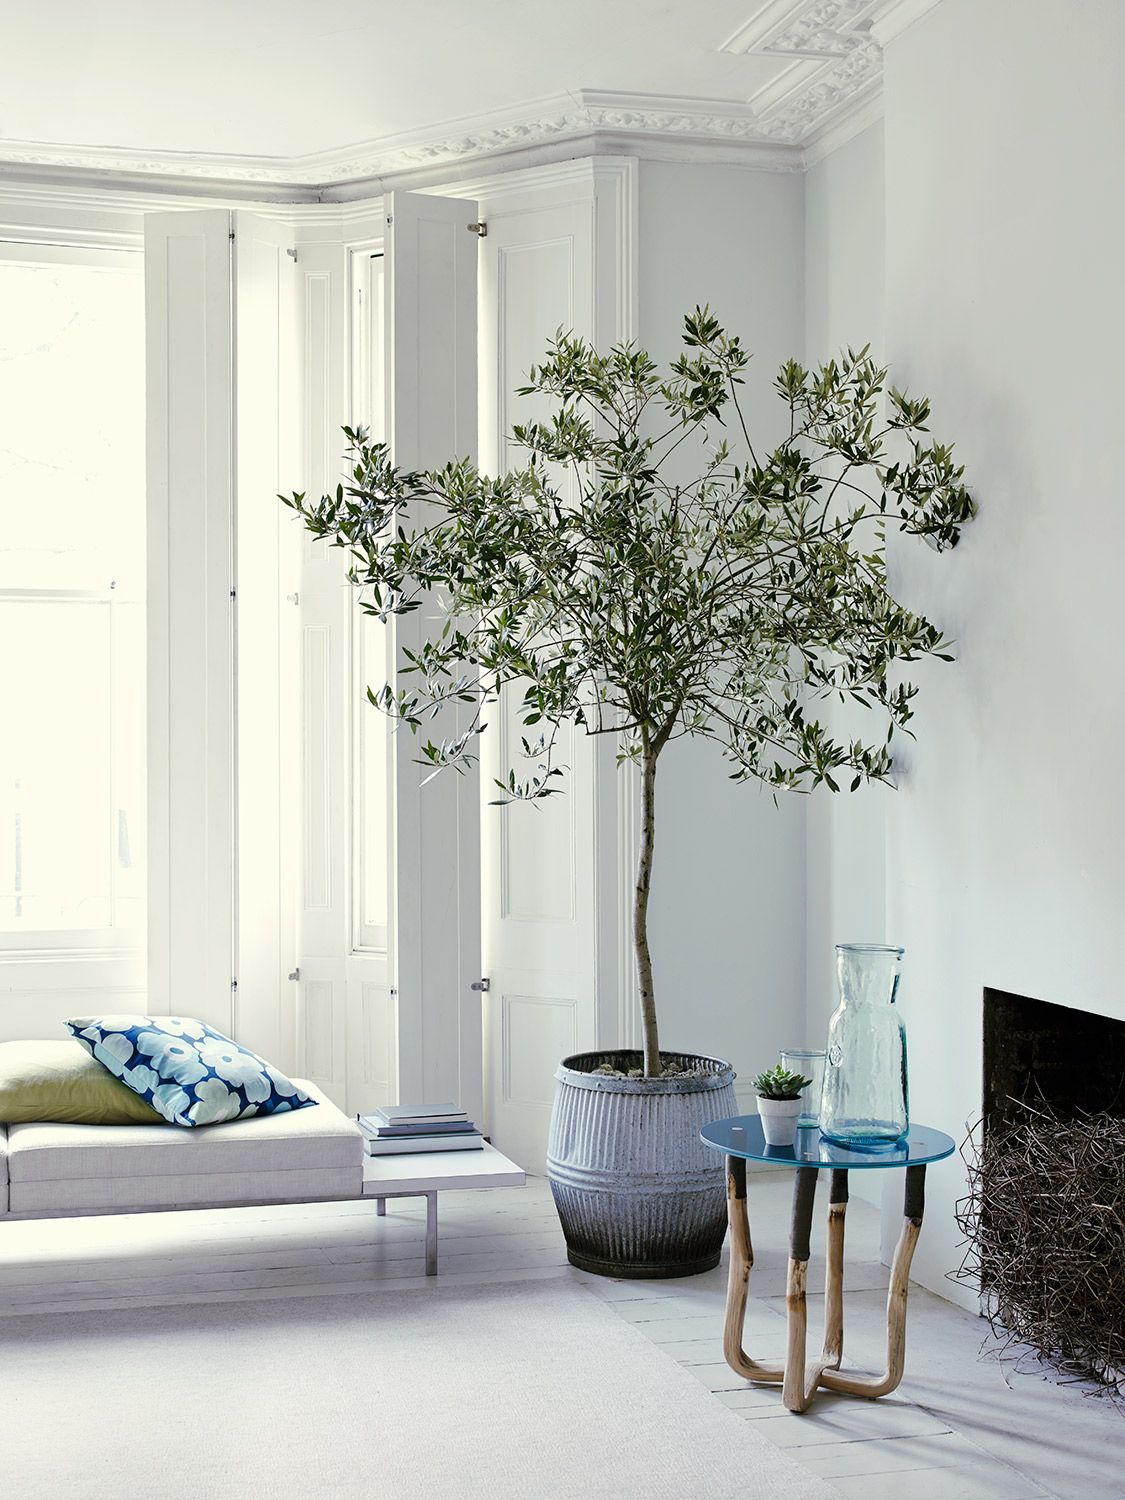 Jake Curtis . INTERIORS. Simple. Has minimalism, nature, comfort, light, and a fireplace, what else do you need?! :D